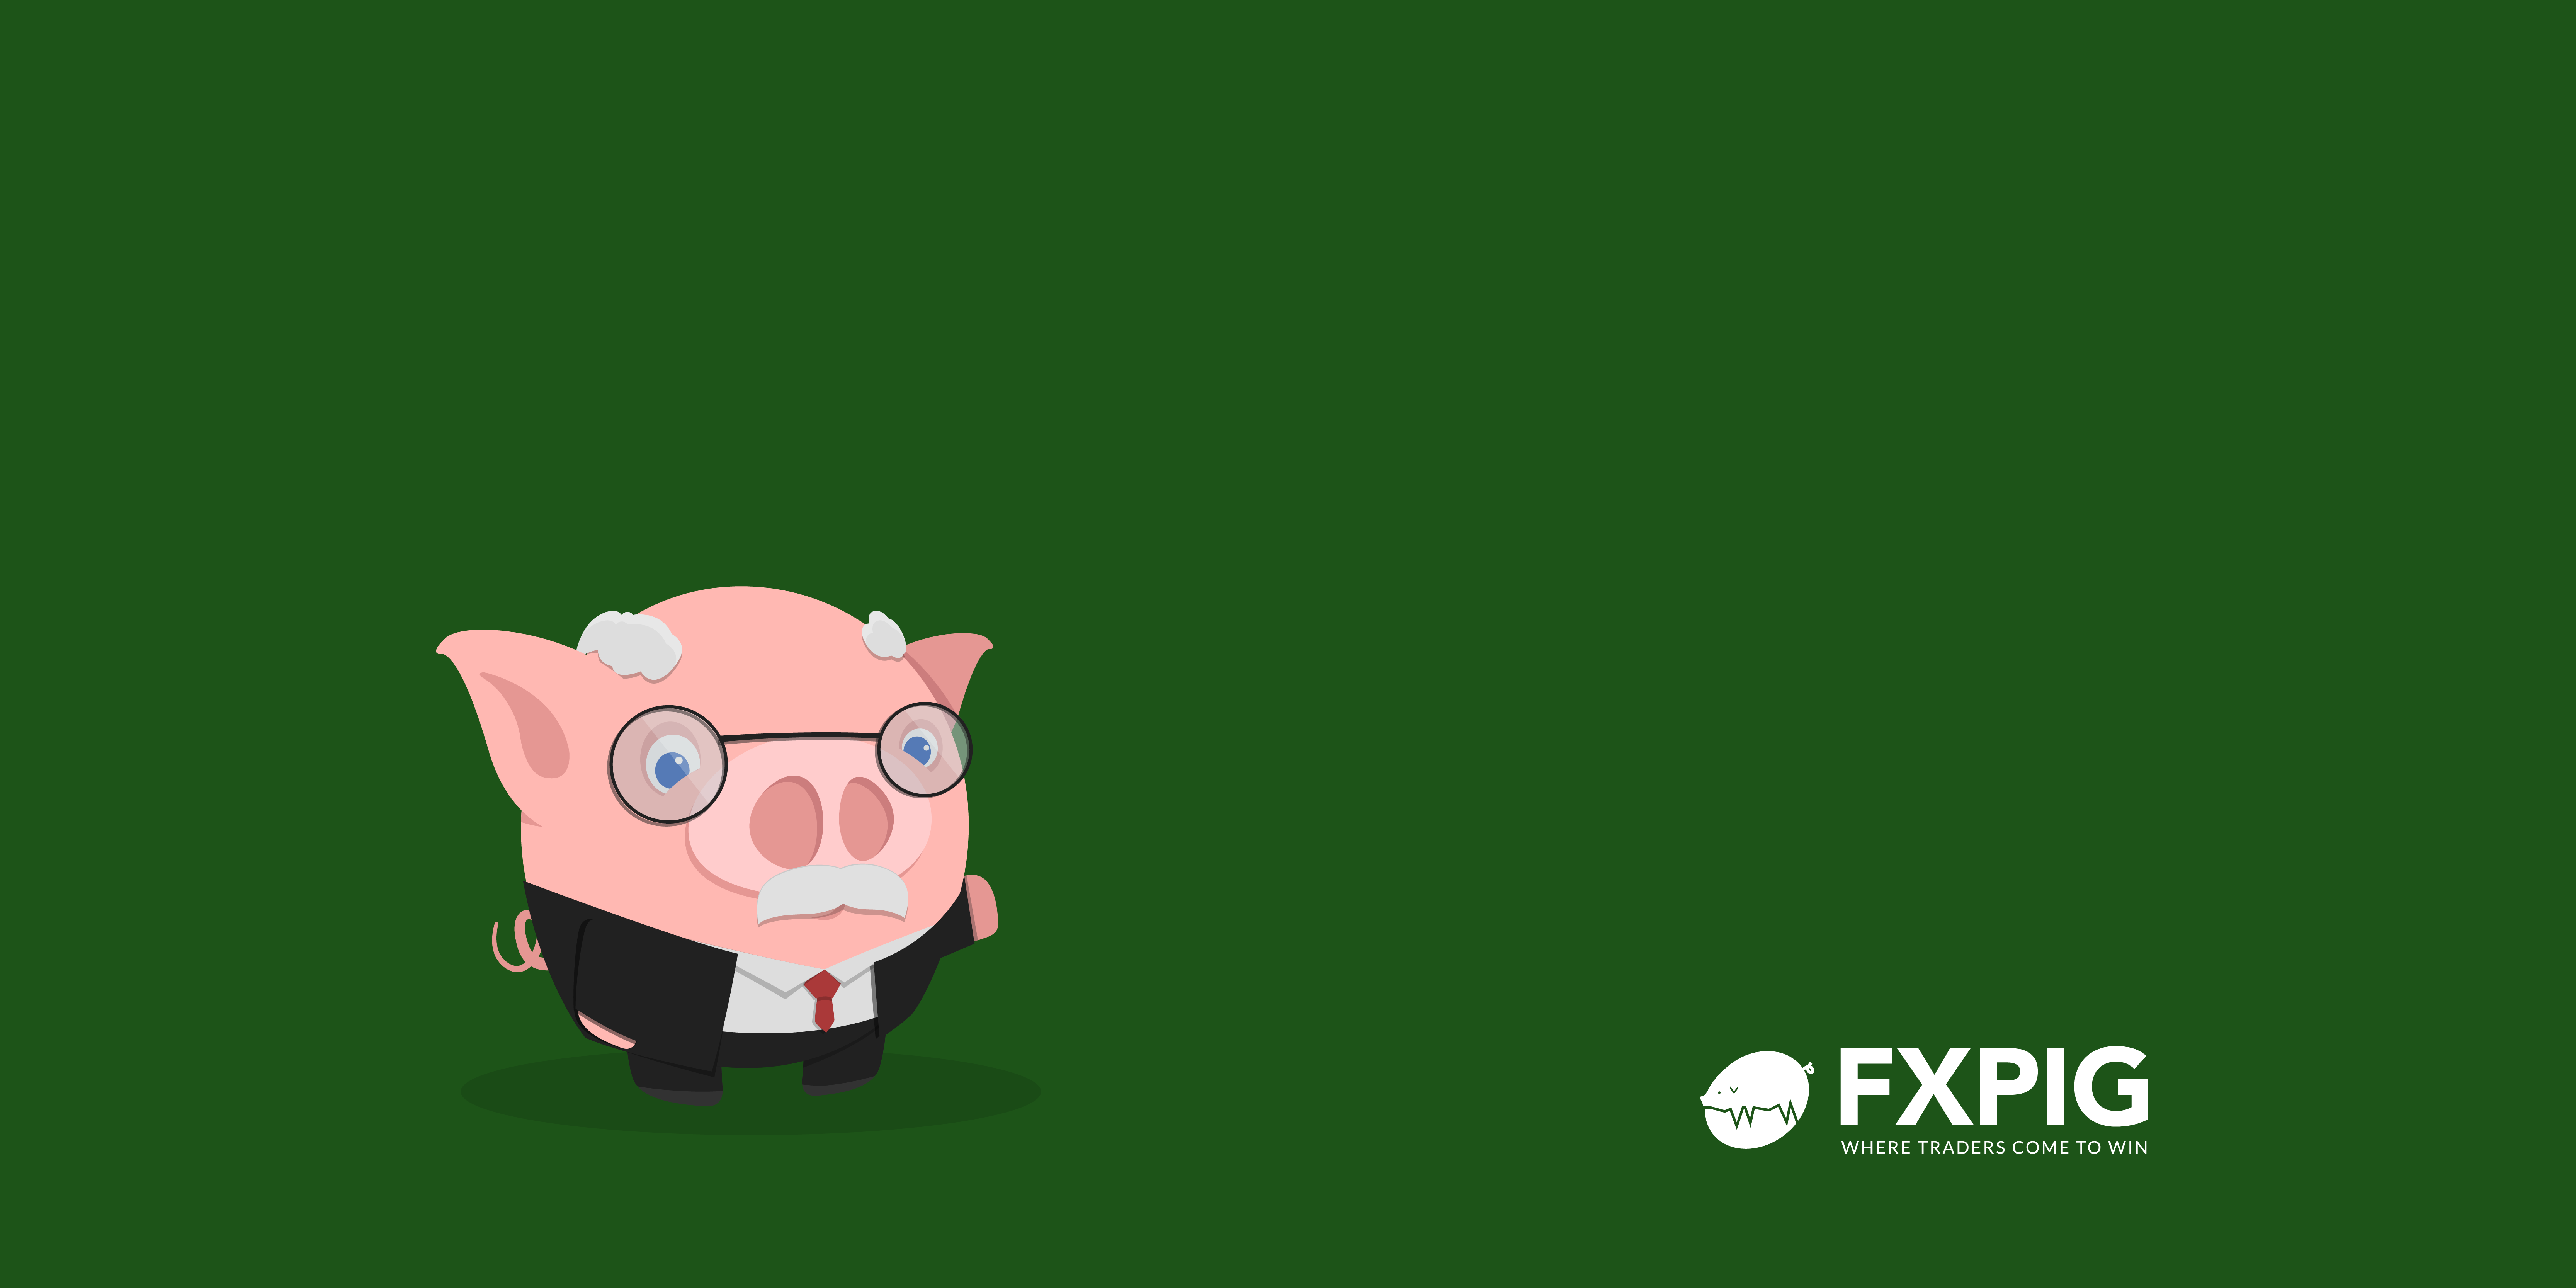 Forex_Trading_Fx_Trader_FXPIG_Forex-Trading-wisdom_Forex-Trading-Quotes_Maerket_Pateince_transfer